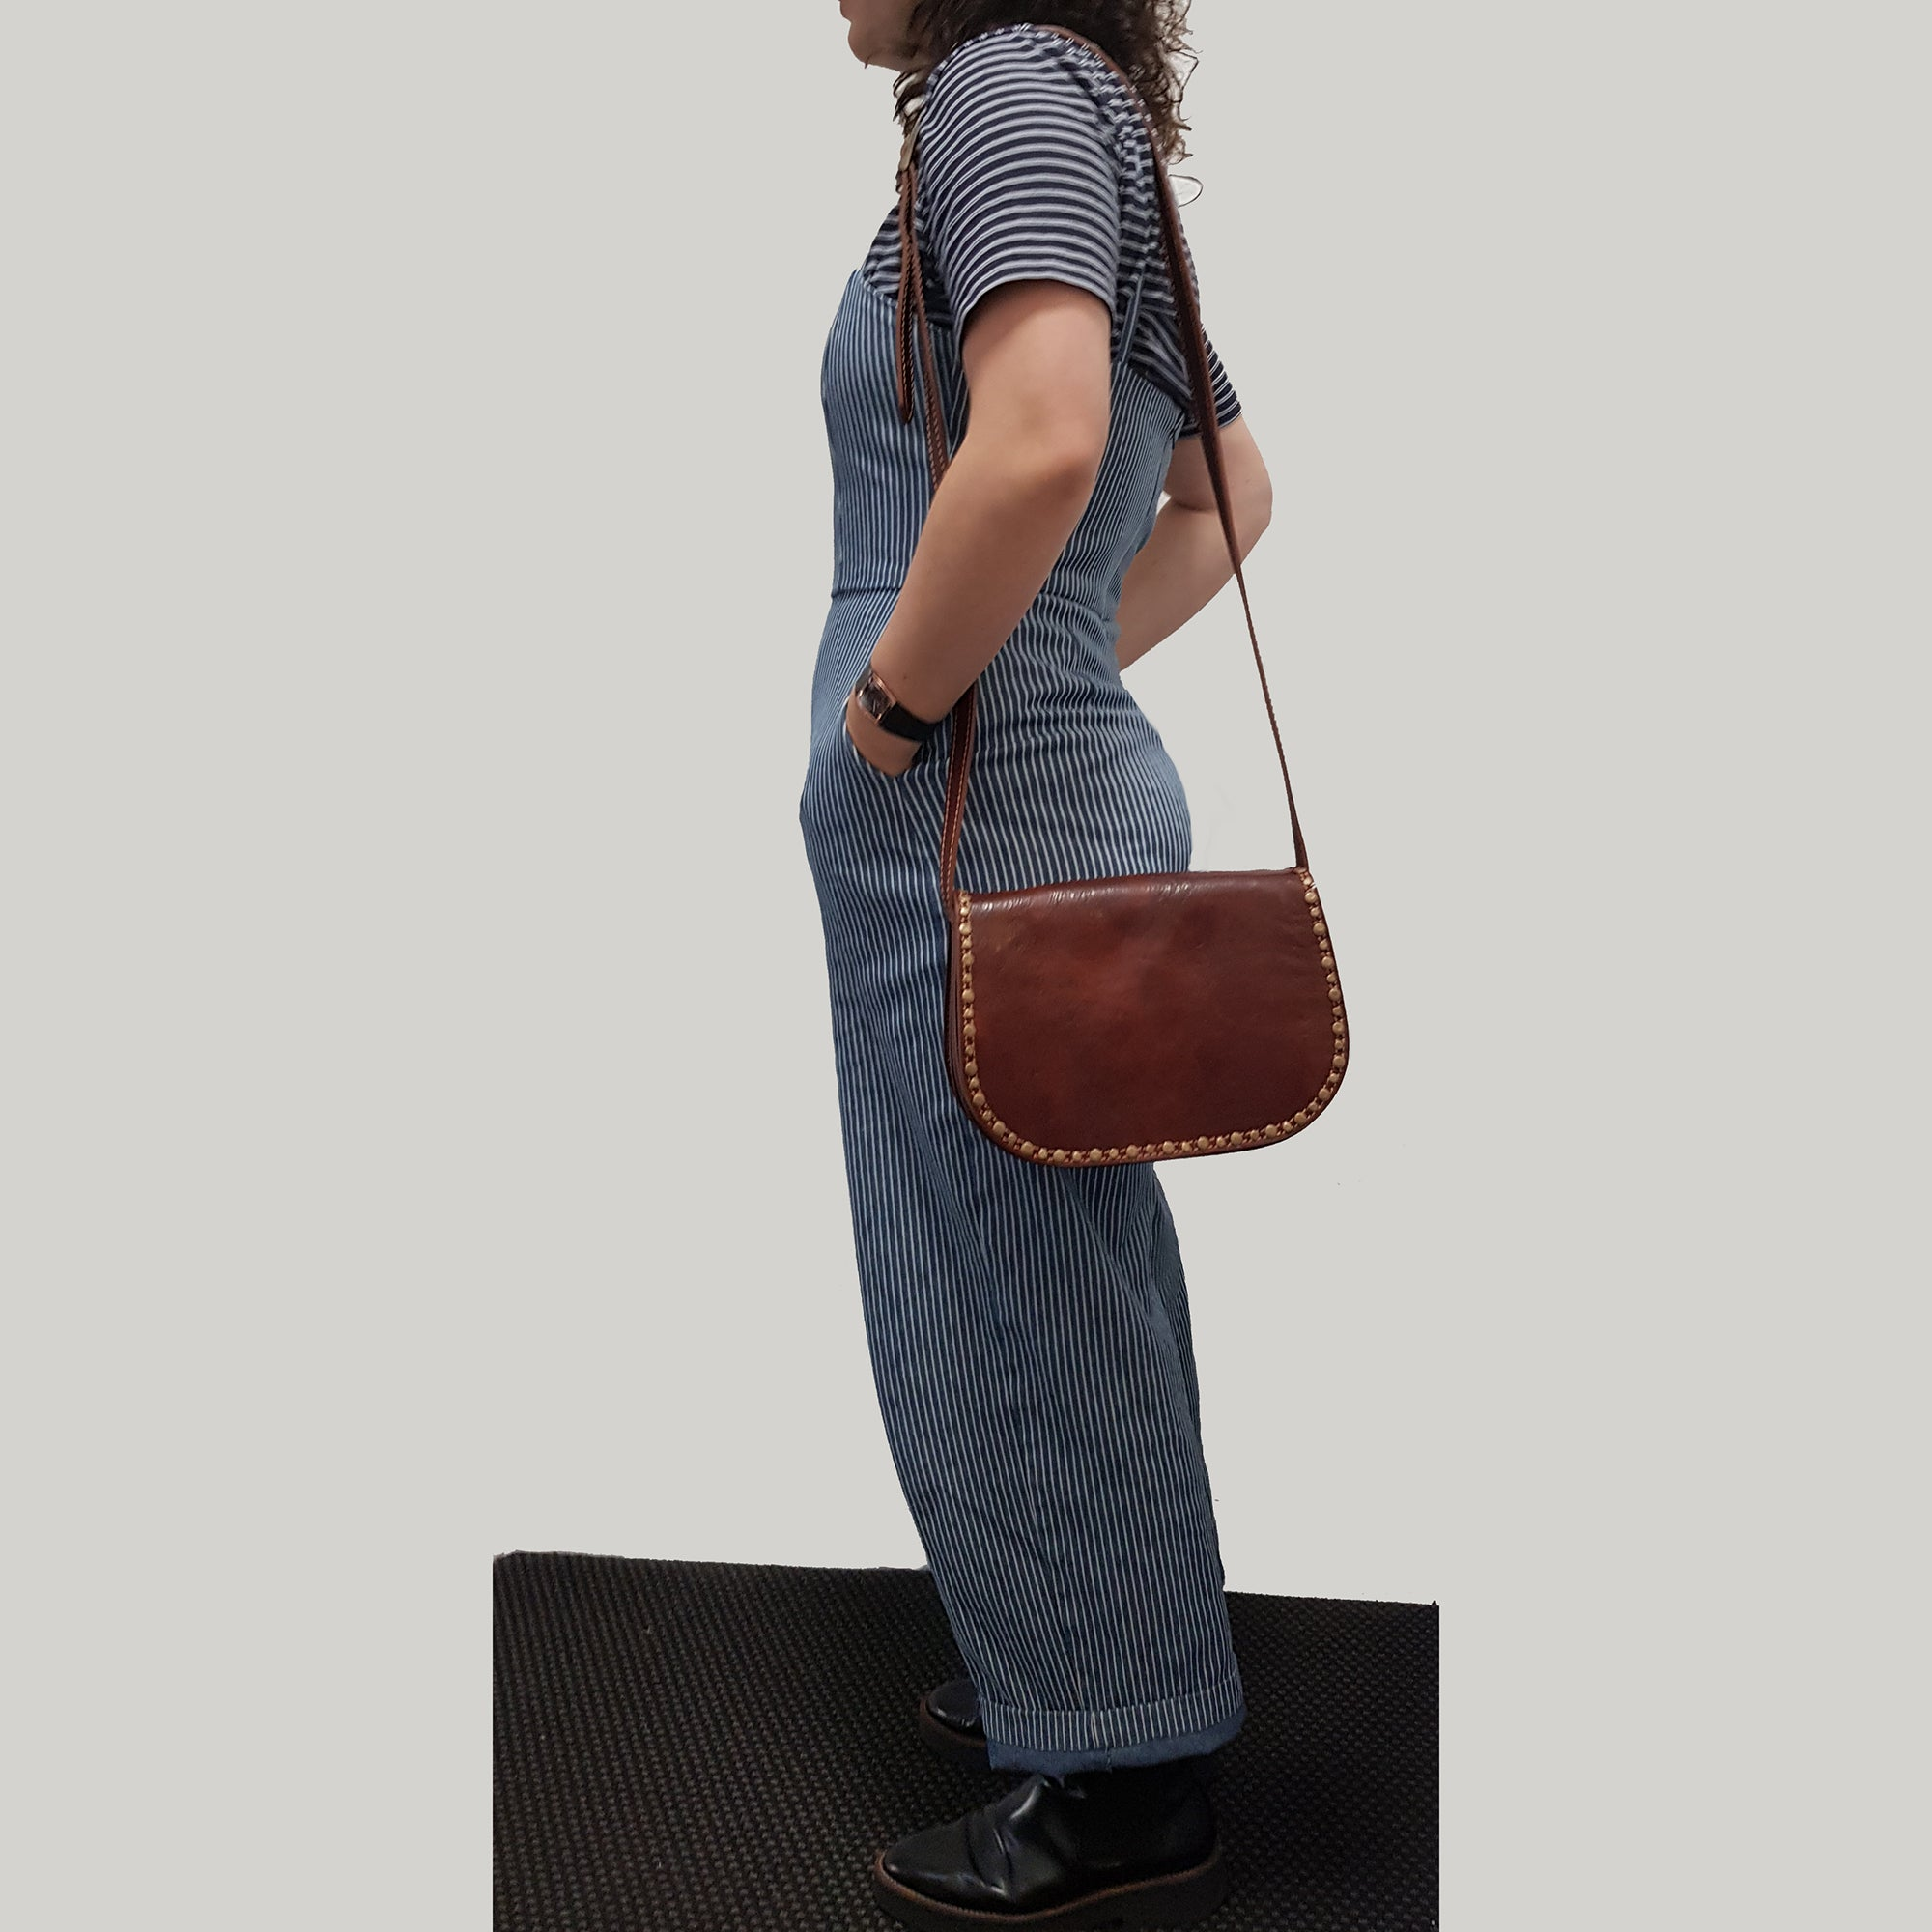 CLEARANCE One Left - Studded Brown Leather Saddle Bag